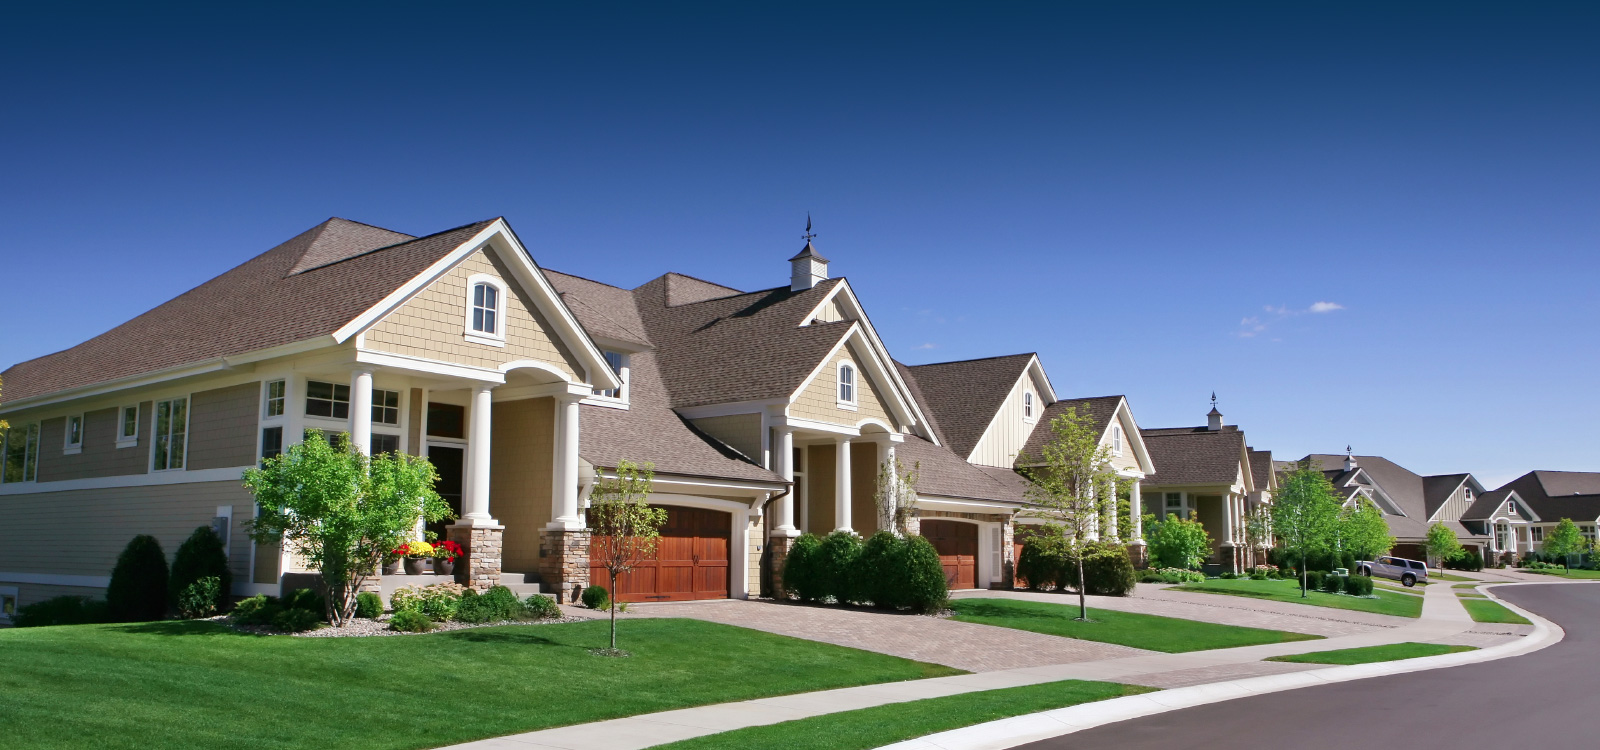 Home Inspection Checklist Columbia